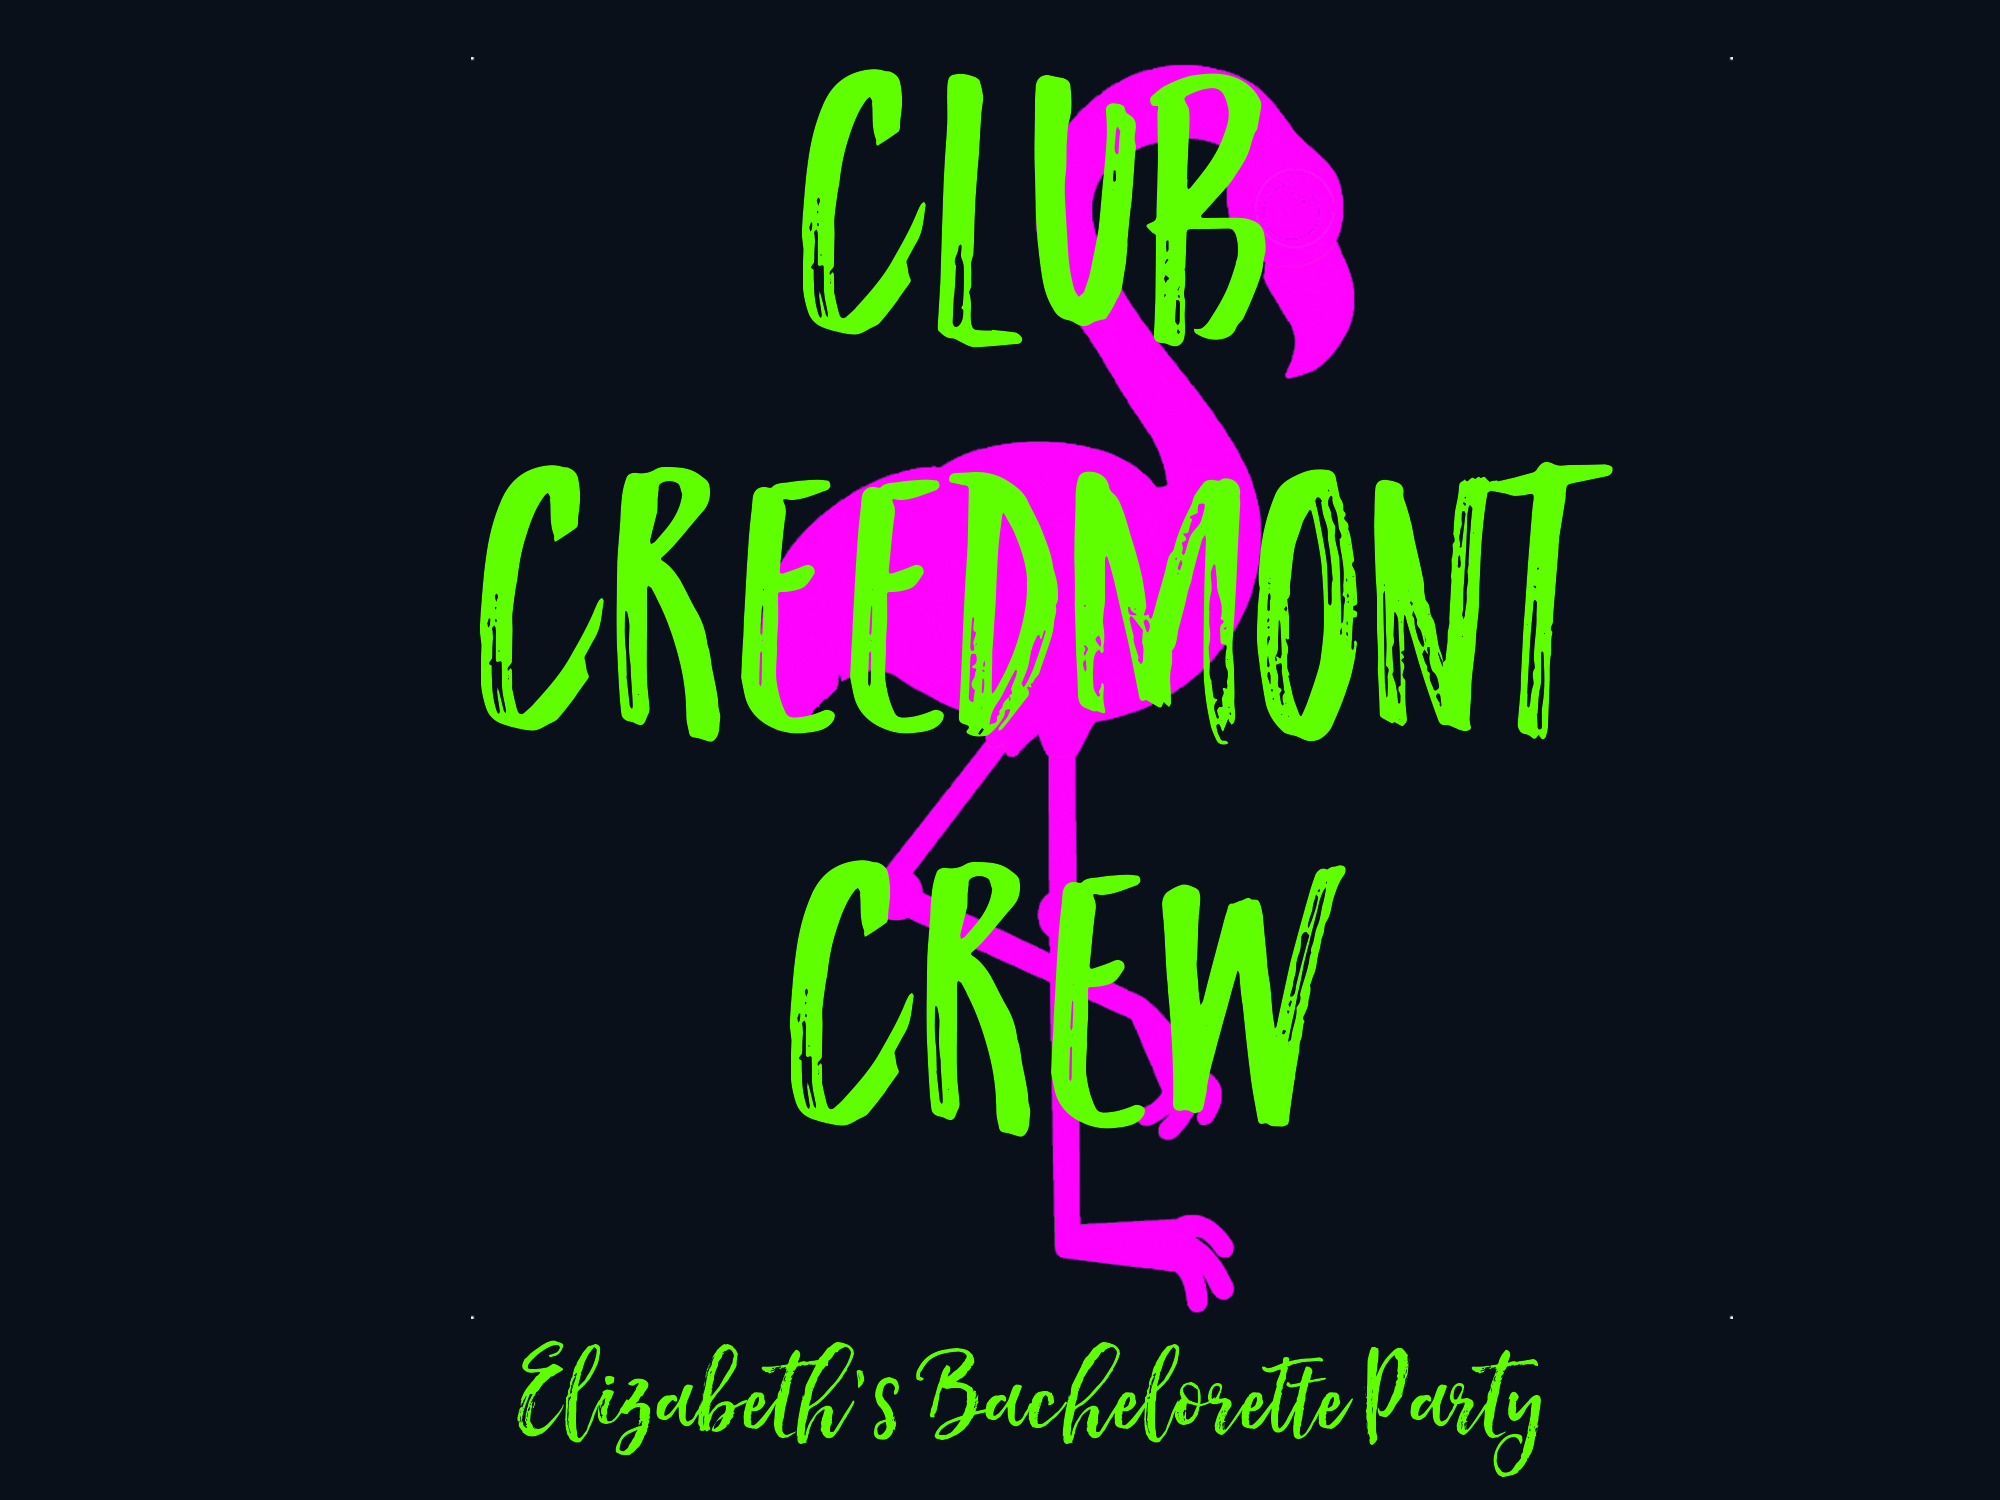 Club Creedmont 2